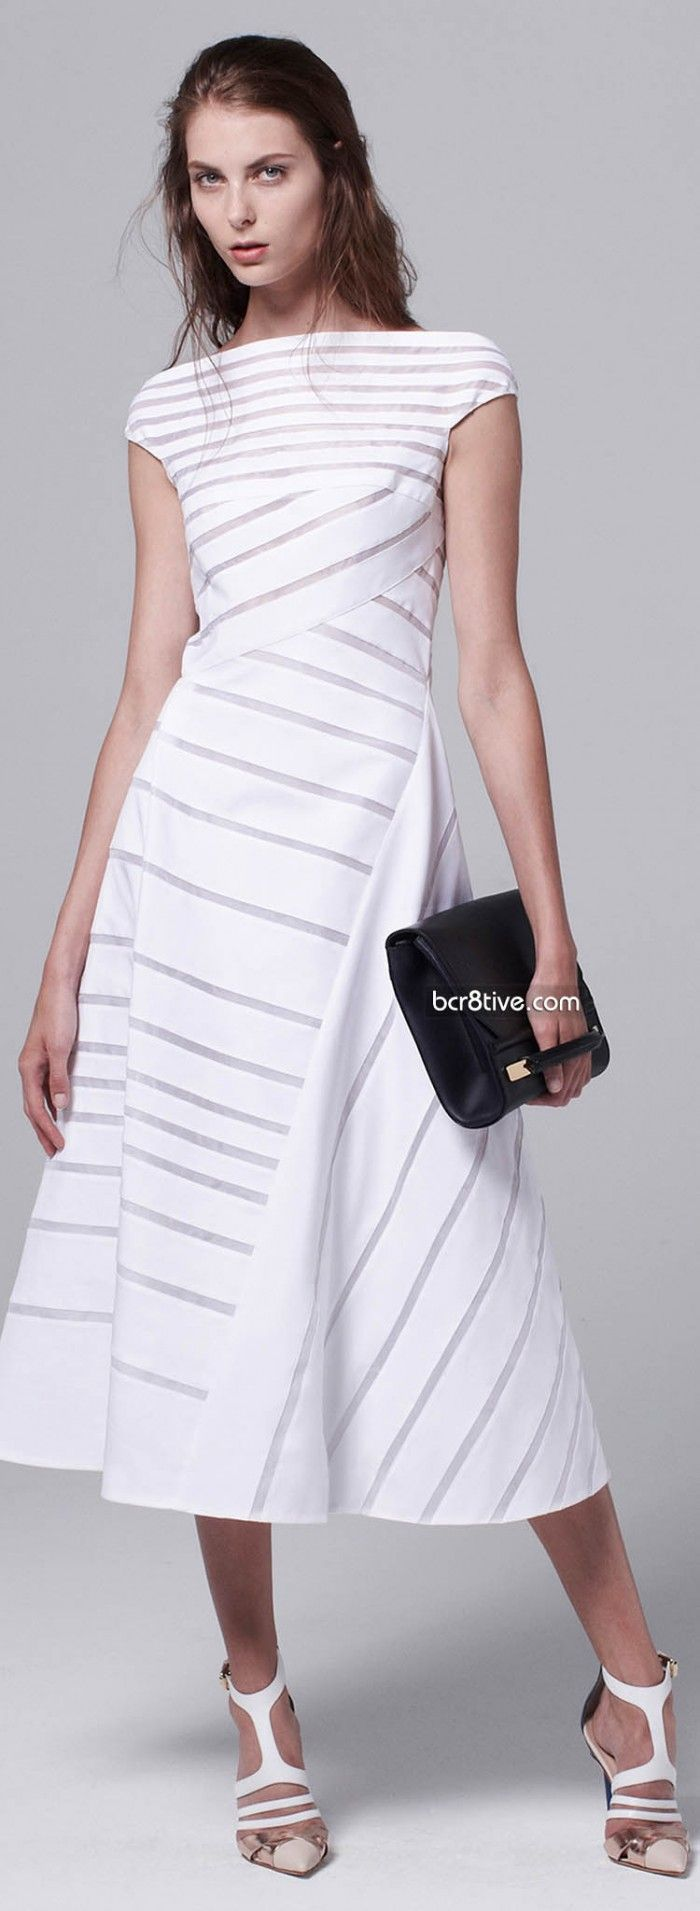 J.Mendel Resort 2014 on bcr8tive.com